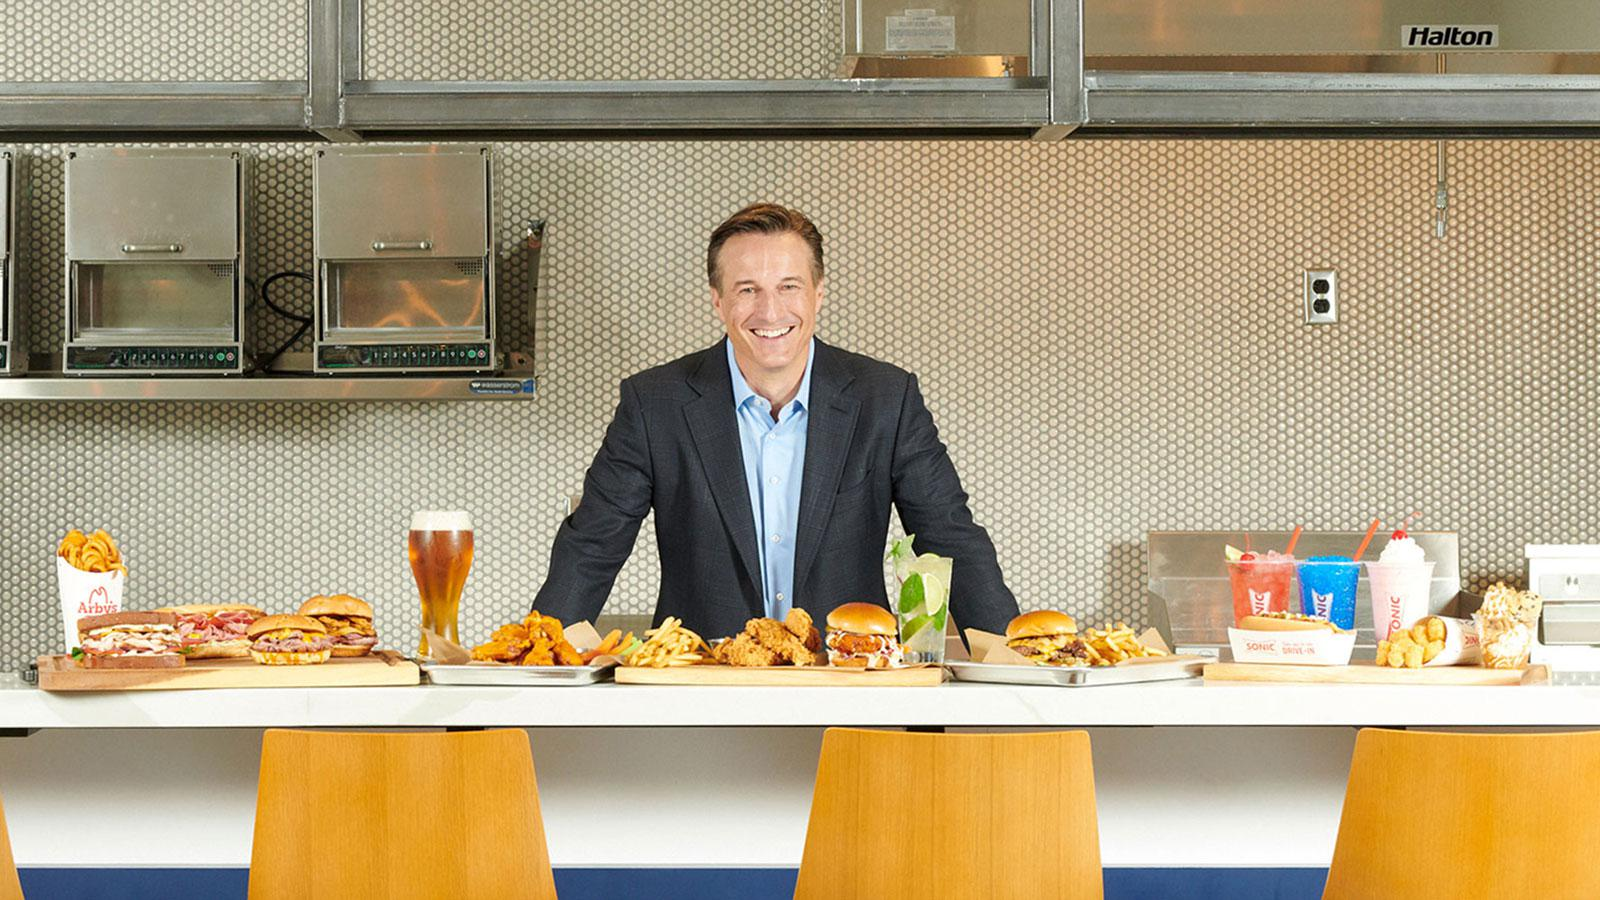 Paul Brown got his first test at revitalizing a tired menu while CEO of Arby's, and in his first three years, sales increased 16% to $3.6 billion, while the average restaurant's revenue increased 25% to $1.1 million annually.